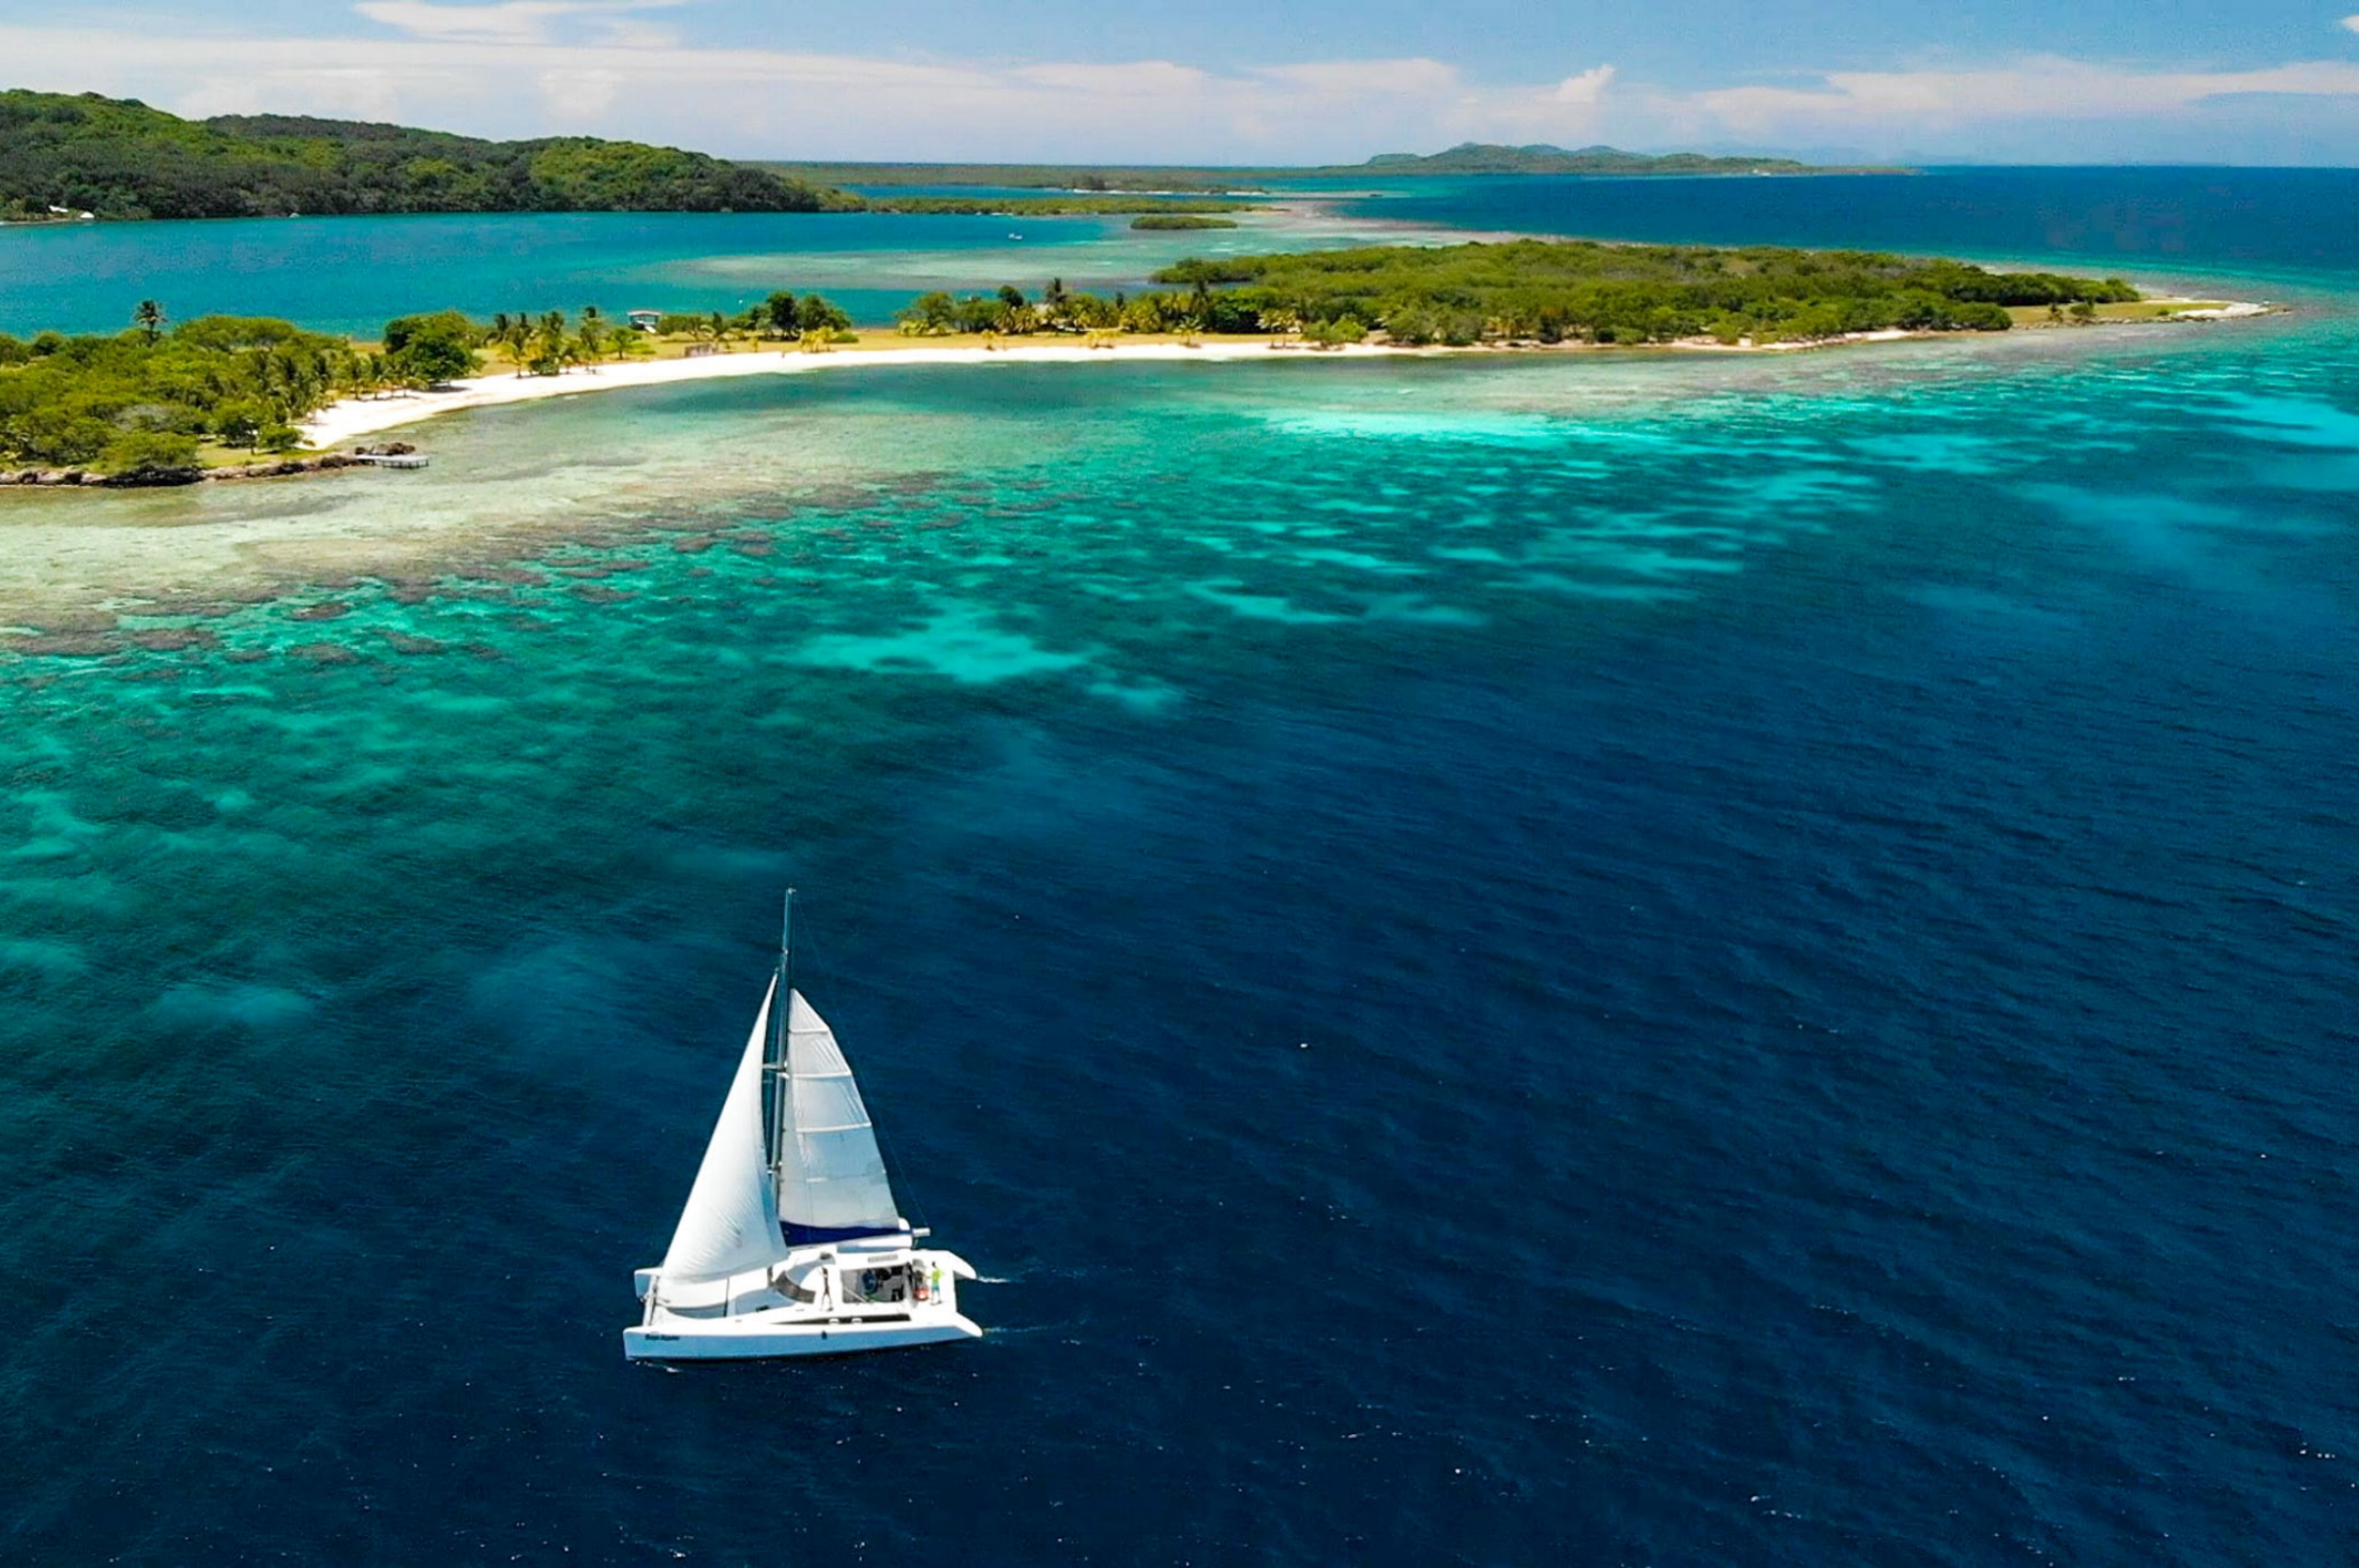 Port Royal Day Sail - A RELAXING MORNING + AFTERNOON SAIL & SNORKEL TO AN IDYLLIC EAST END HARBOR.Trip Duration: 6 hours